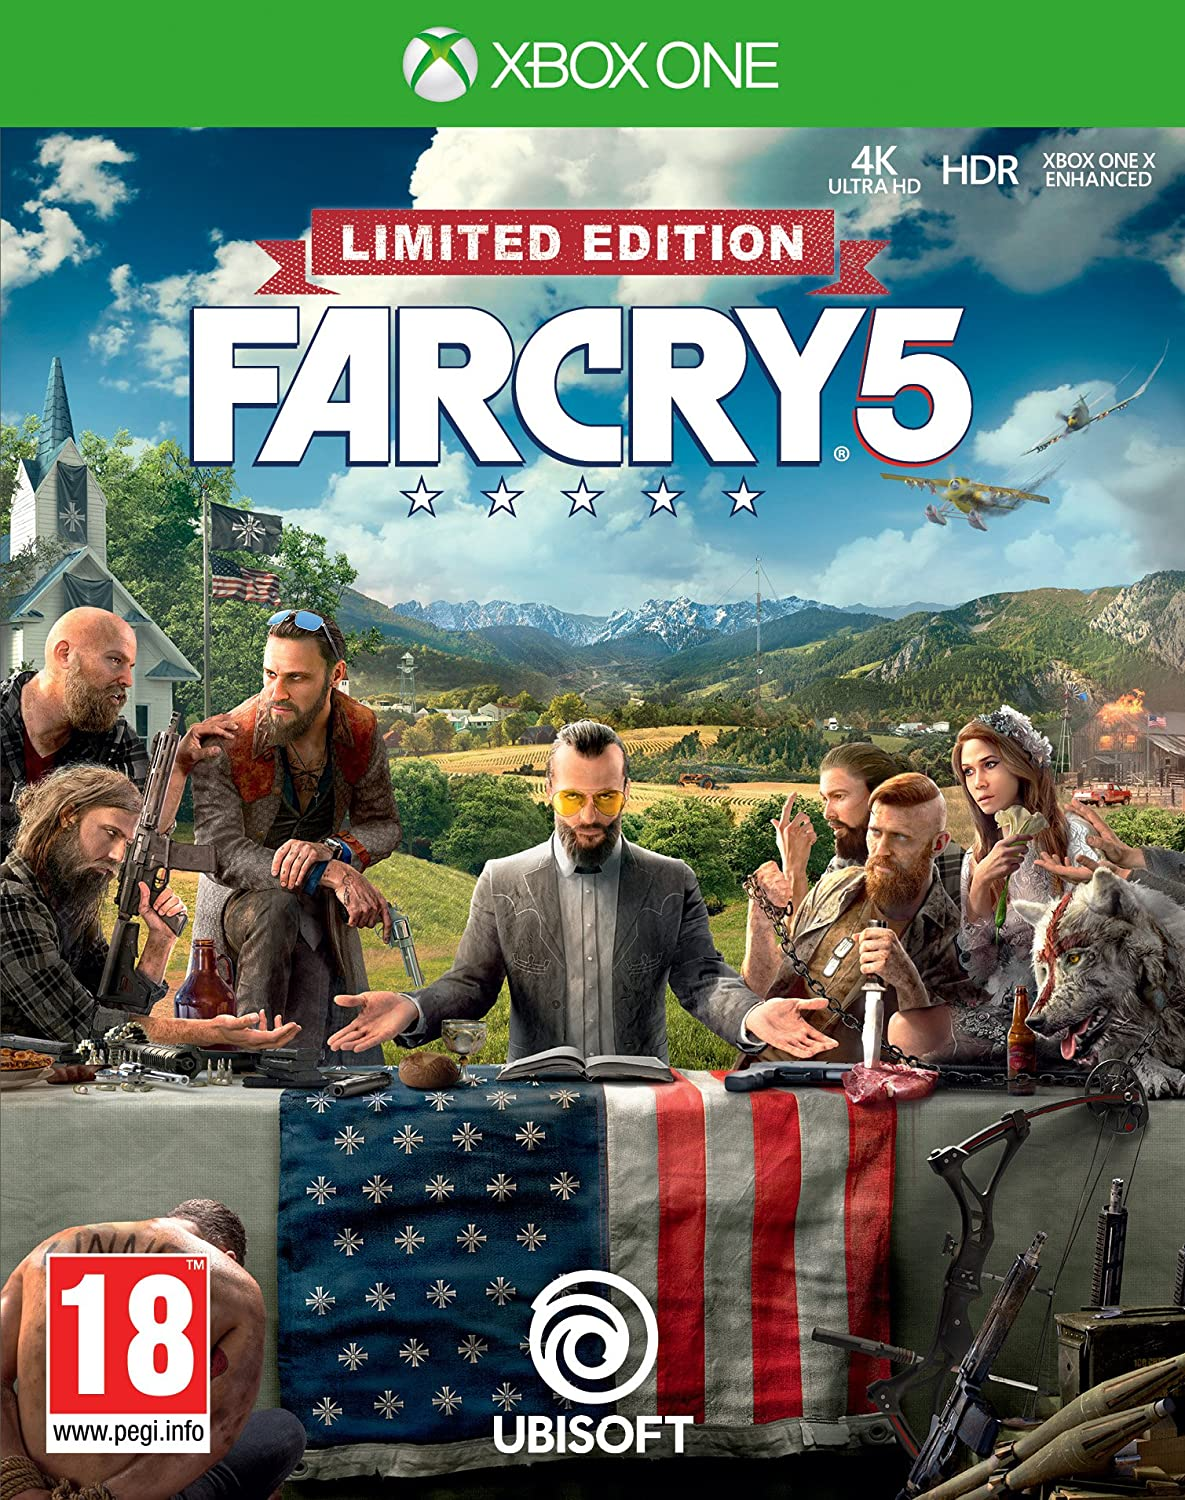 Far Cry 5 - Edición Limited (Edición Exclusiva Amazon): Amazon.es: Videojuegos